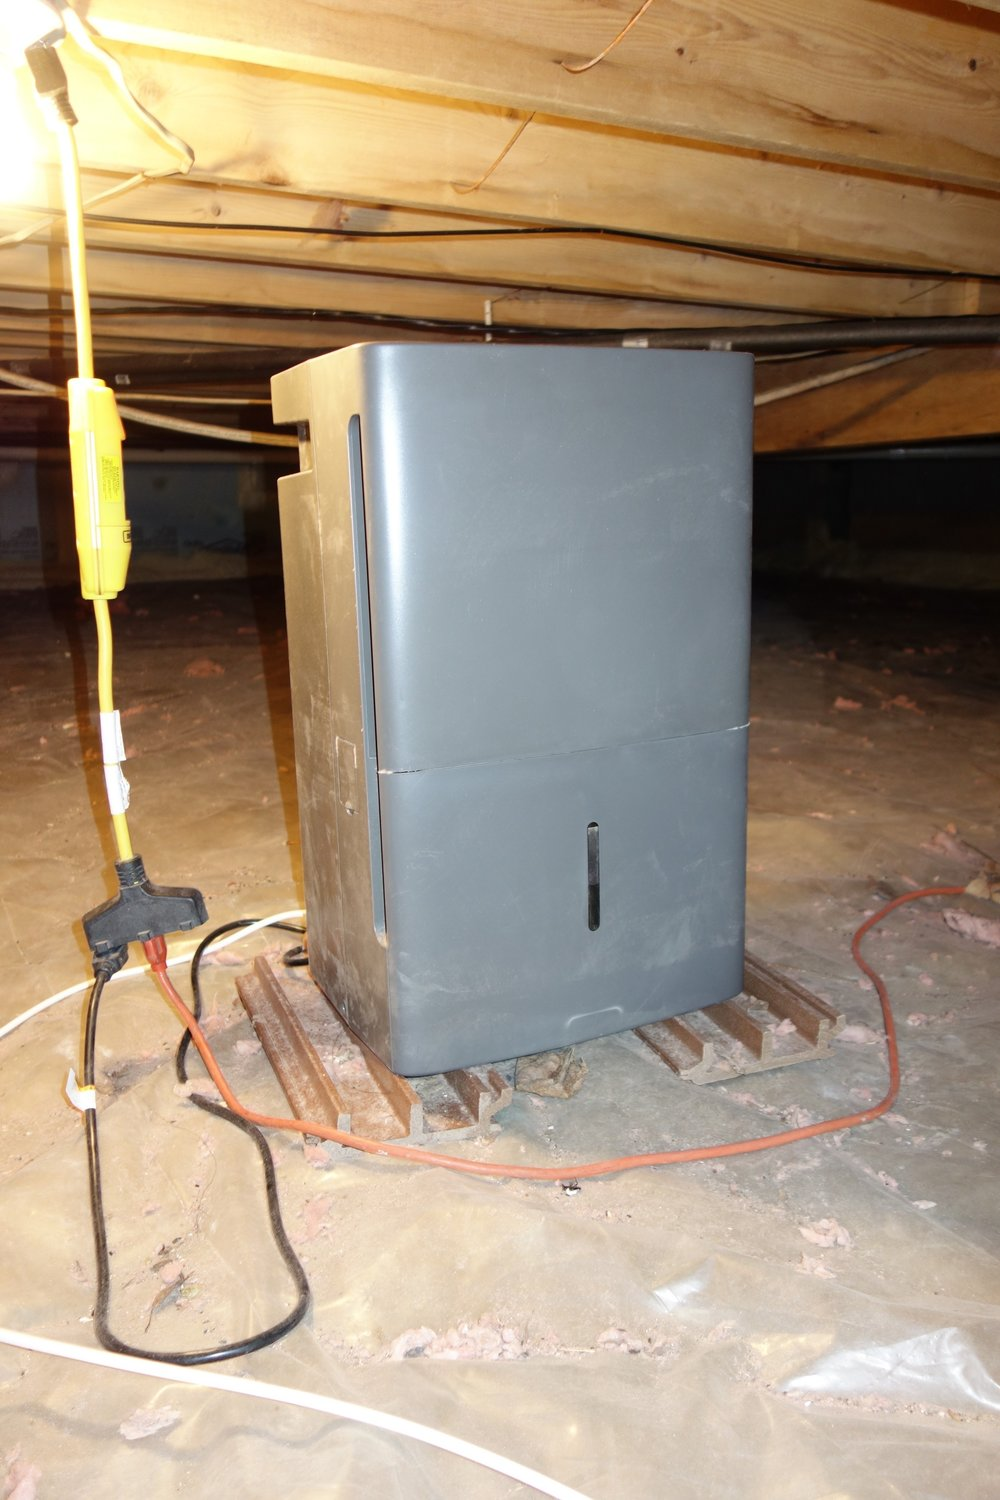 With 1,800 square feet of crawl space to condition, and fairly poor air flow due to 3 interior walls, I decided to install two dehumidifiers, even though one would technically be enough. There were several key features to shop for: overall capacity (70 pints/day in my case), built-in pump to empty the water tank, defrost circuit, and energy star rating (for power company rebate),